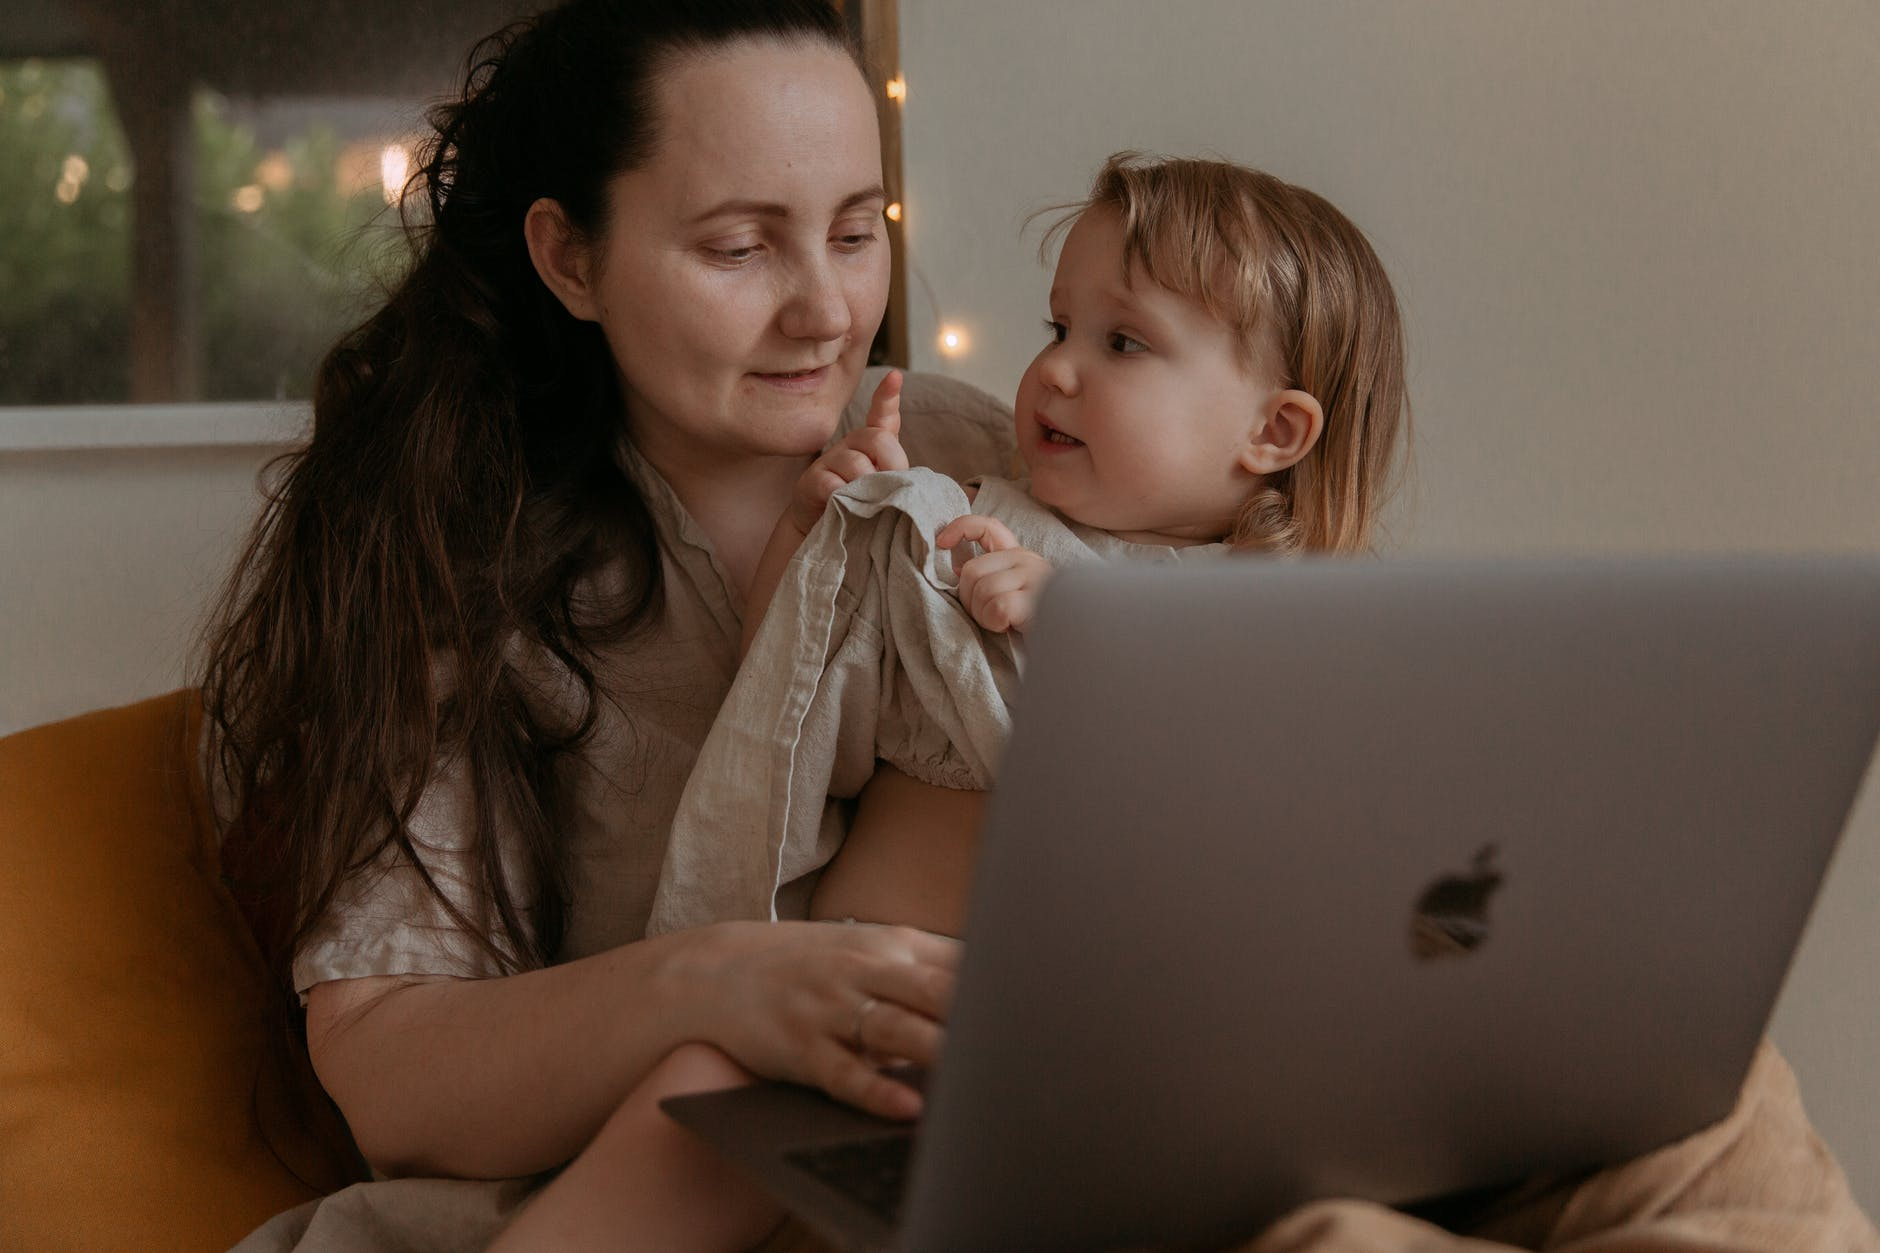 Mom working on her laptop and holding her baby